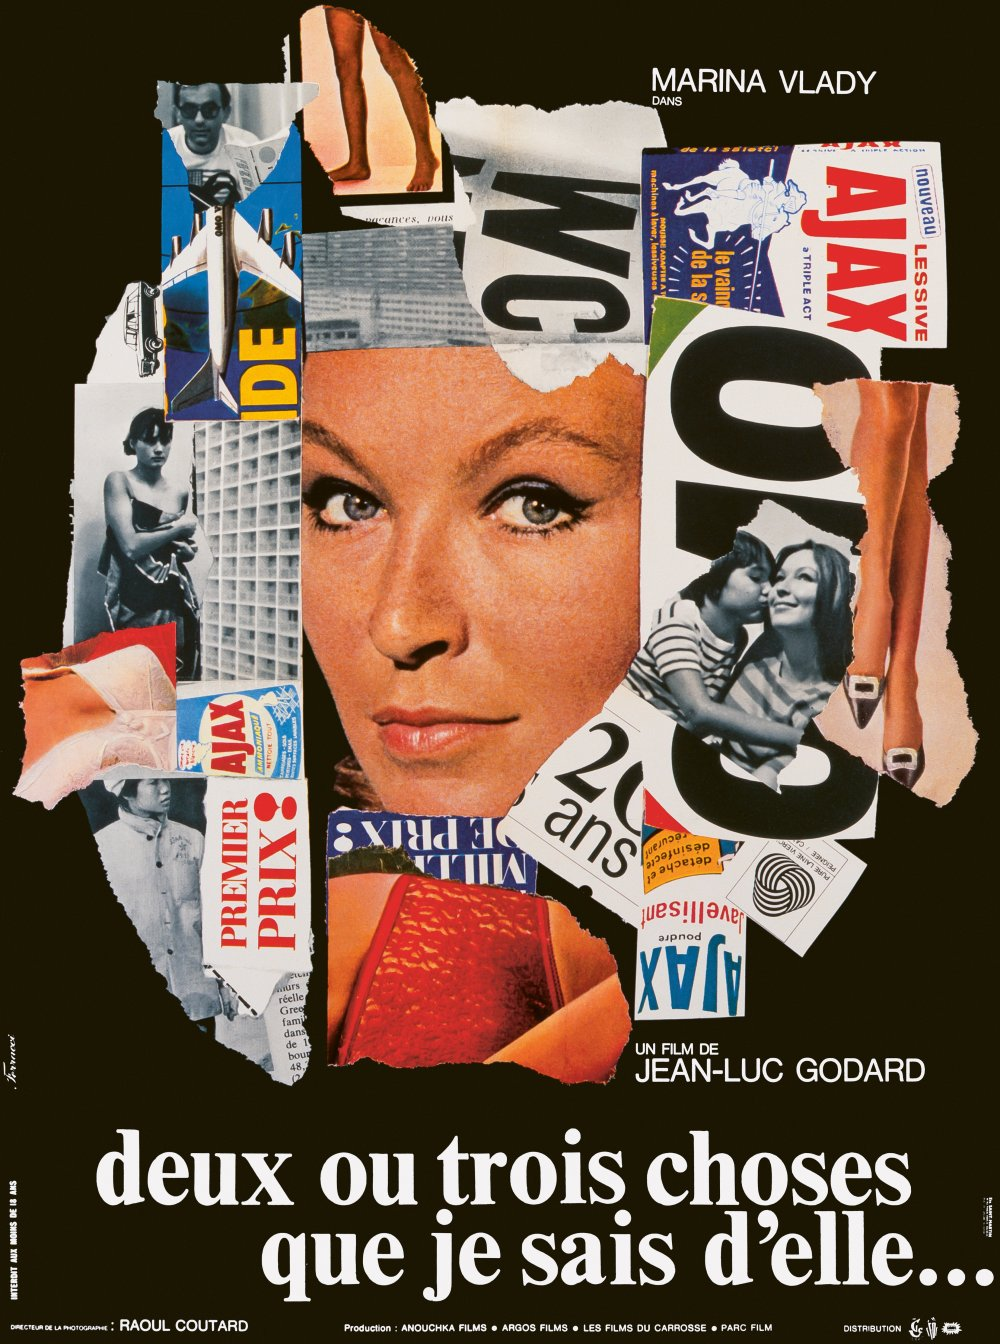 <strong>2 or 3 Things I Know about Her (1967) poster. René Ferracci, France. </strong>Like a half-torn billboard advertisement, this French poster for 2 or 3 Things I Know about Her uses collage to quote elements from Godard's film. There's a clear parallel between Godard's cutup montage and the act of collage itself. 'It's the quintessential movie poster of the French New Wave,' says Nourmand. 'It has all of the qualities that I'm trying to show in the book – they're using techniques like photomontage, and also these brands you see in the poster like AJAX; it's almost like Warhol using Coca-Cola. A lot of these references were in the movie too, of course. The idea of it – for both Godard and Ferracci, I imagine – comes from those early pop art pieces by Rauschenberg and Warhol, where they were using everyday objects and using them in the artworks – the American flag, Coca-Cola cans, Campbell's soup cans.'